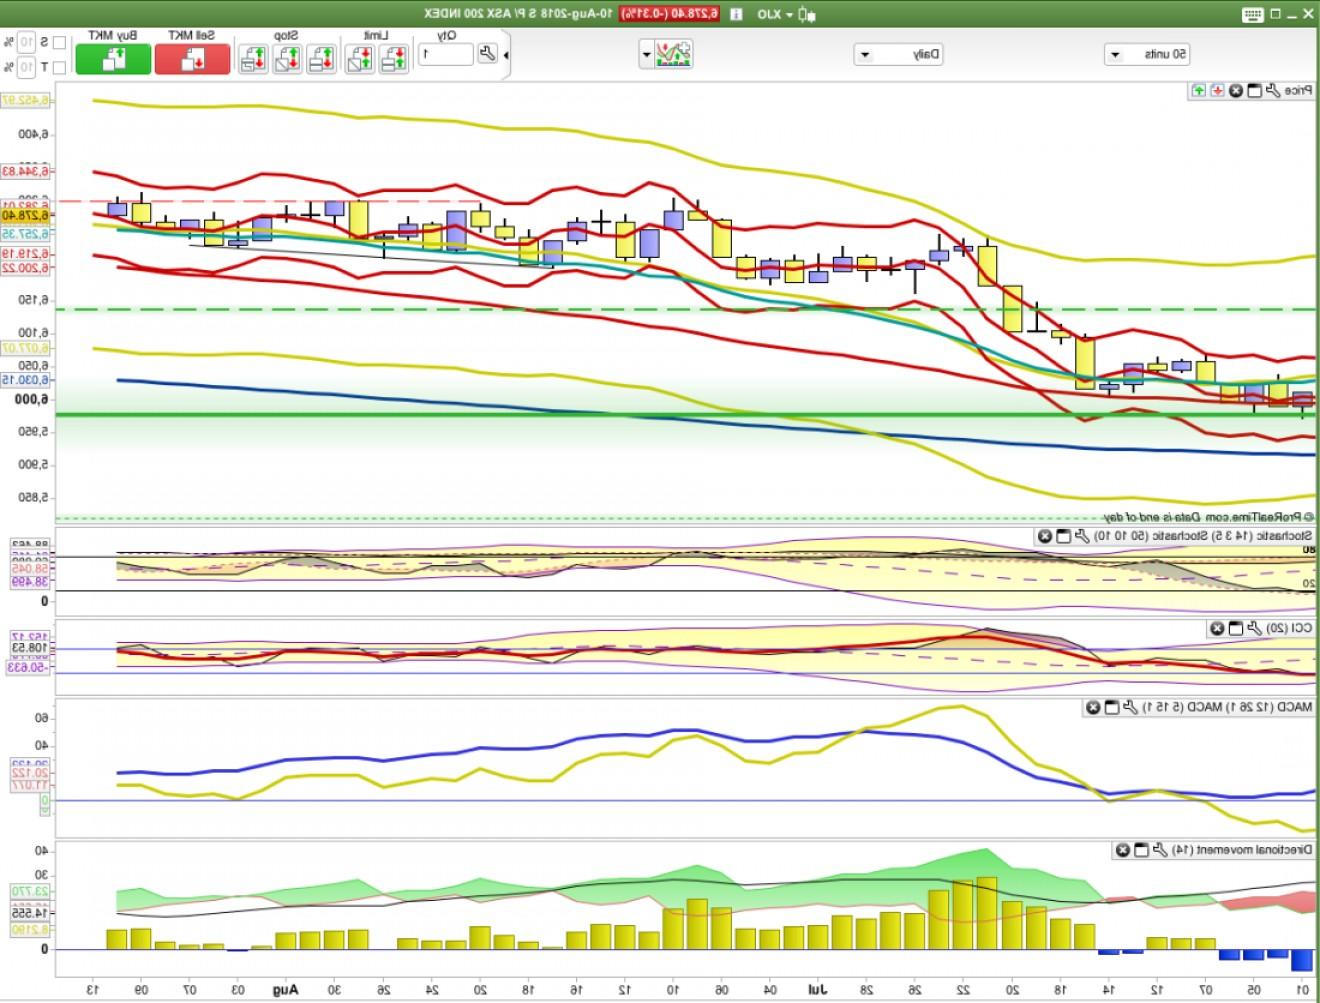 VectorVest Pro Graphics: Short Term Trading Weekend Lounge Th Aug